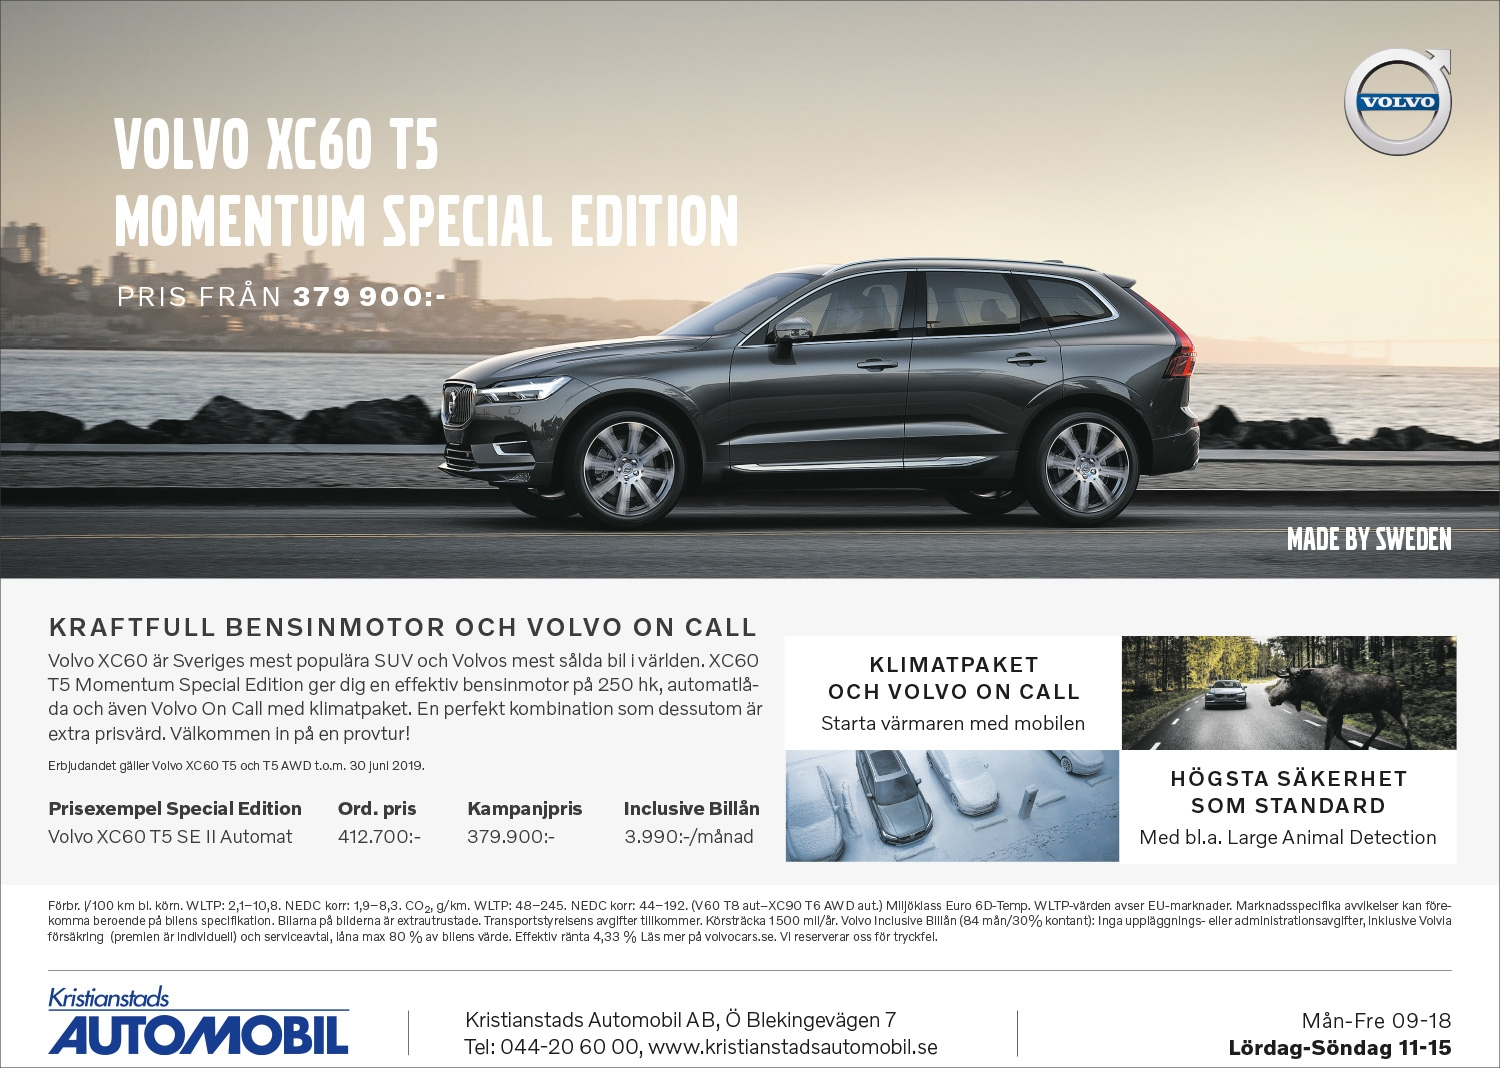 VOLVO XC60 T5 MOMENTUM SPECIAL EDITION